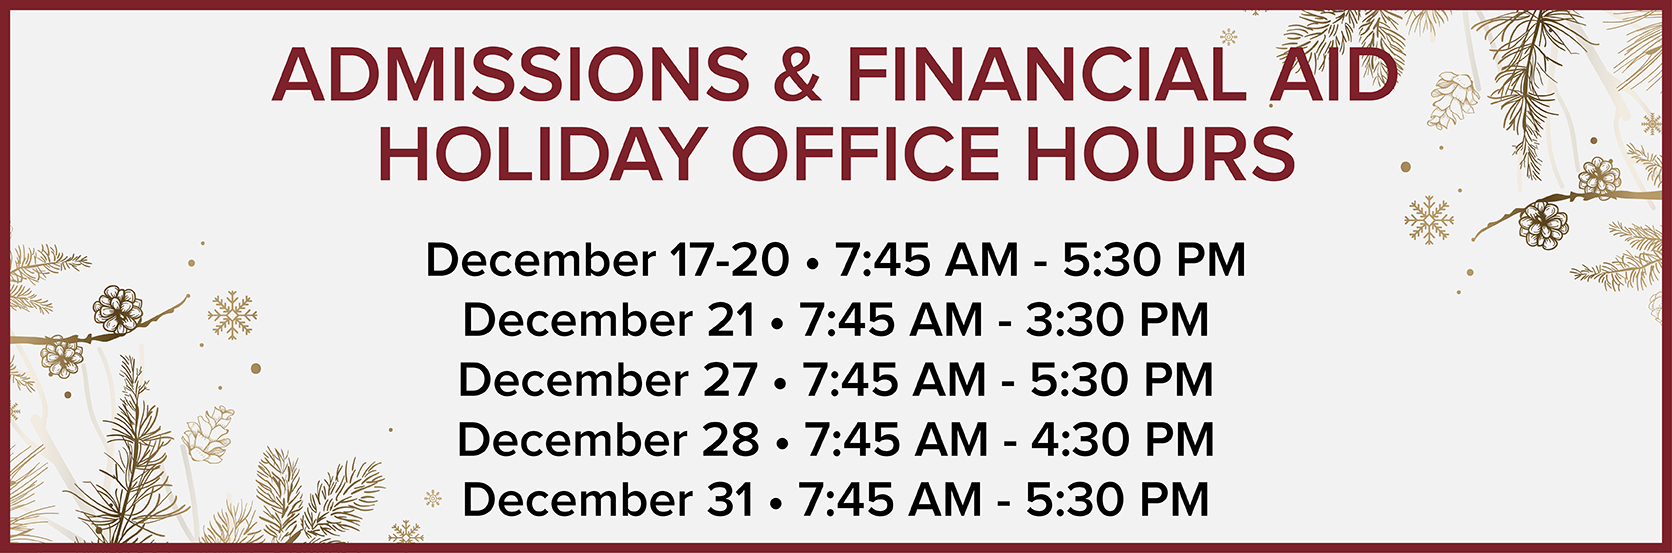 Admissions and Financial Aid Office Holiday Hours December 17‑20 • 7:45 AM ‑ 5:30 PM | December 21 • 7:45 AM - 3:30 PM | December 27 • 7:45 AM ‑ 5:30 PM | December 28 • 7:45 AM ‑ 4:30 PM | December 31 • 7:45 AM - 5:30 PM